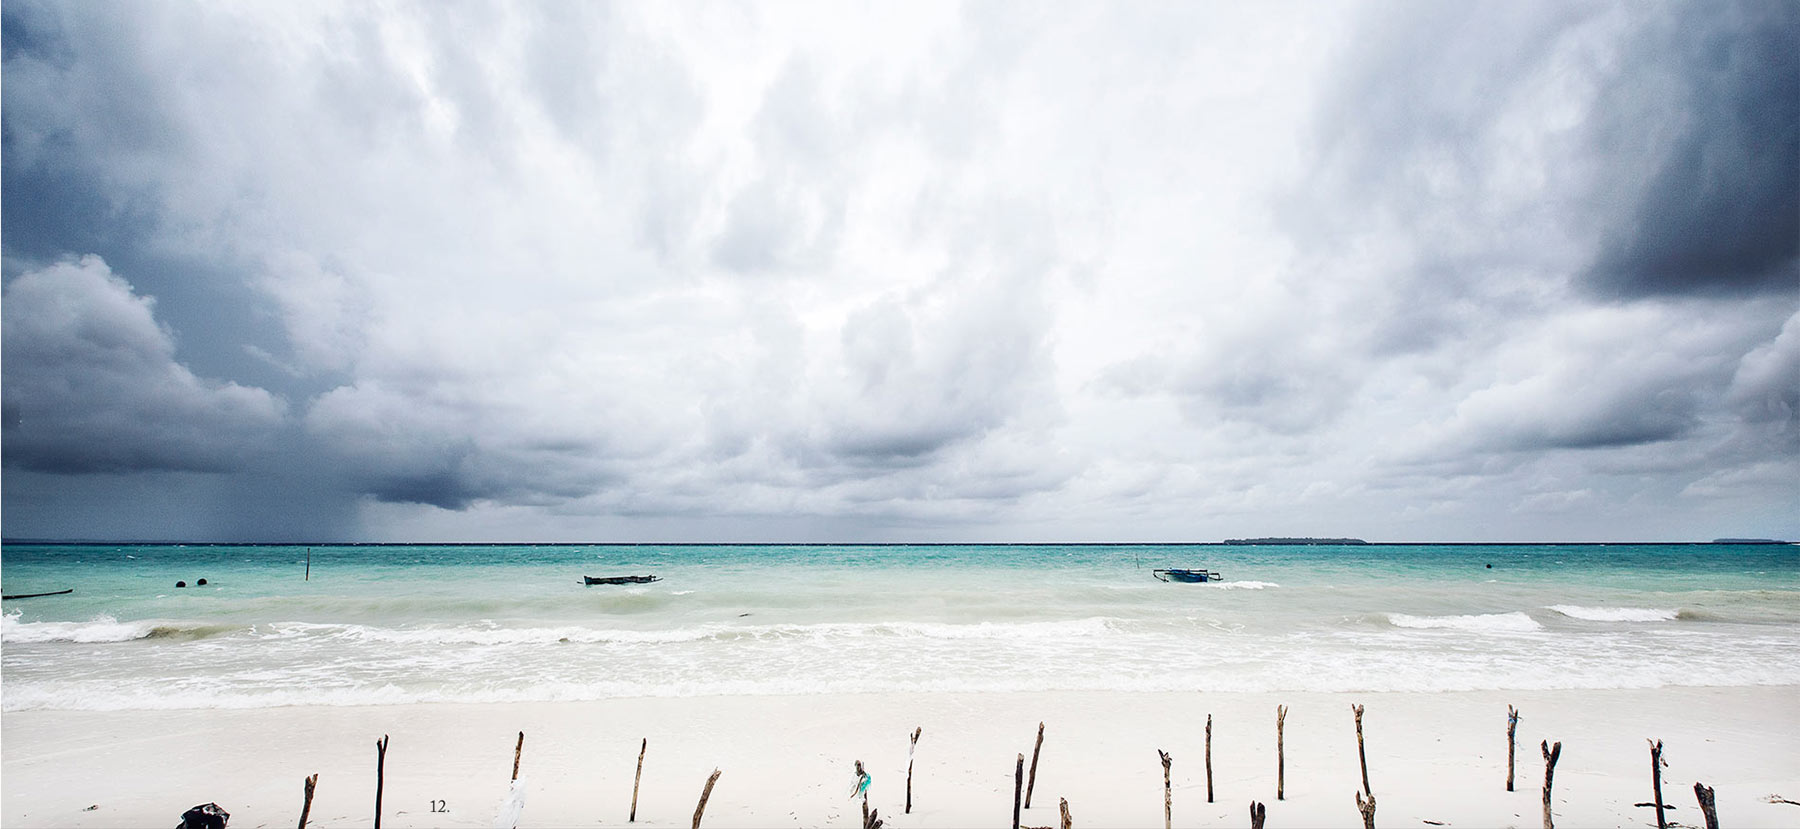 the undeveloped Kei archipelago in Indonesia offers white sandy beaches that stretch for kilometres and not a single person in sight